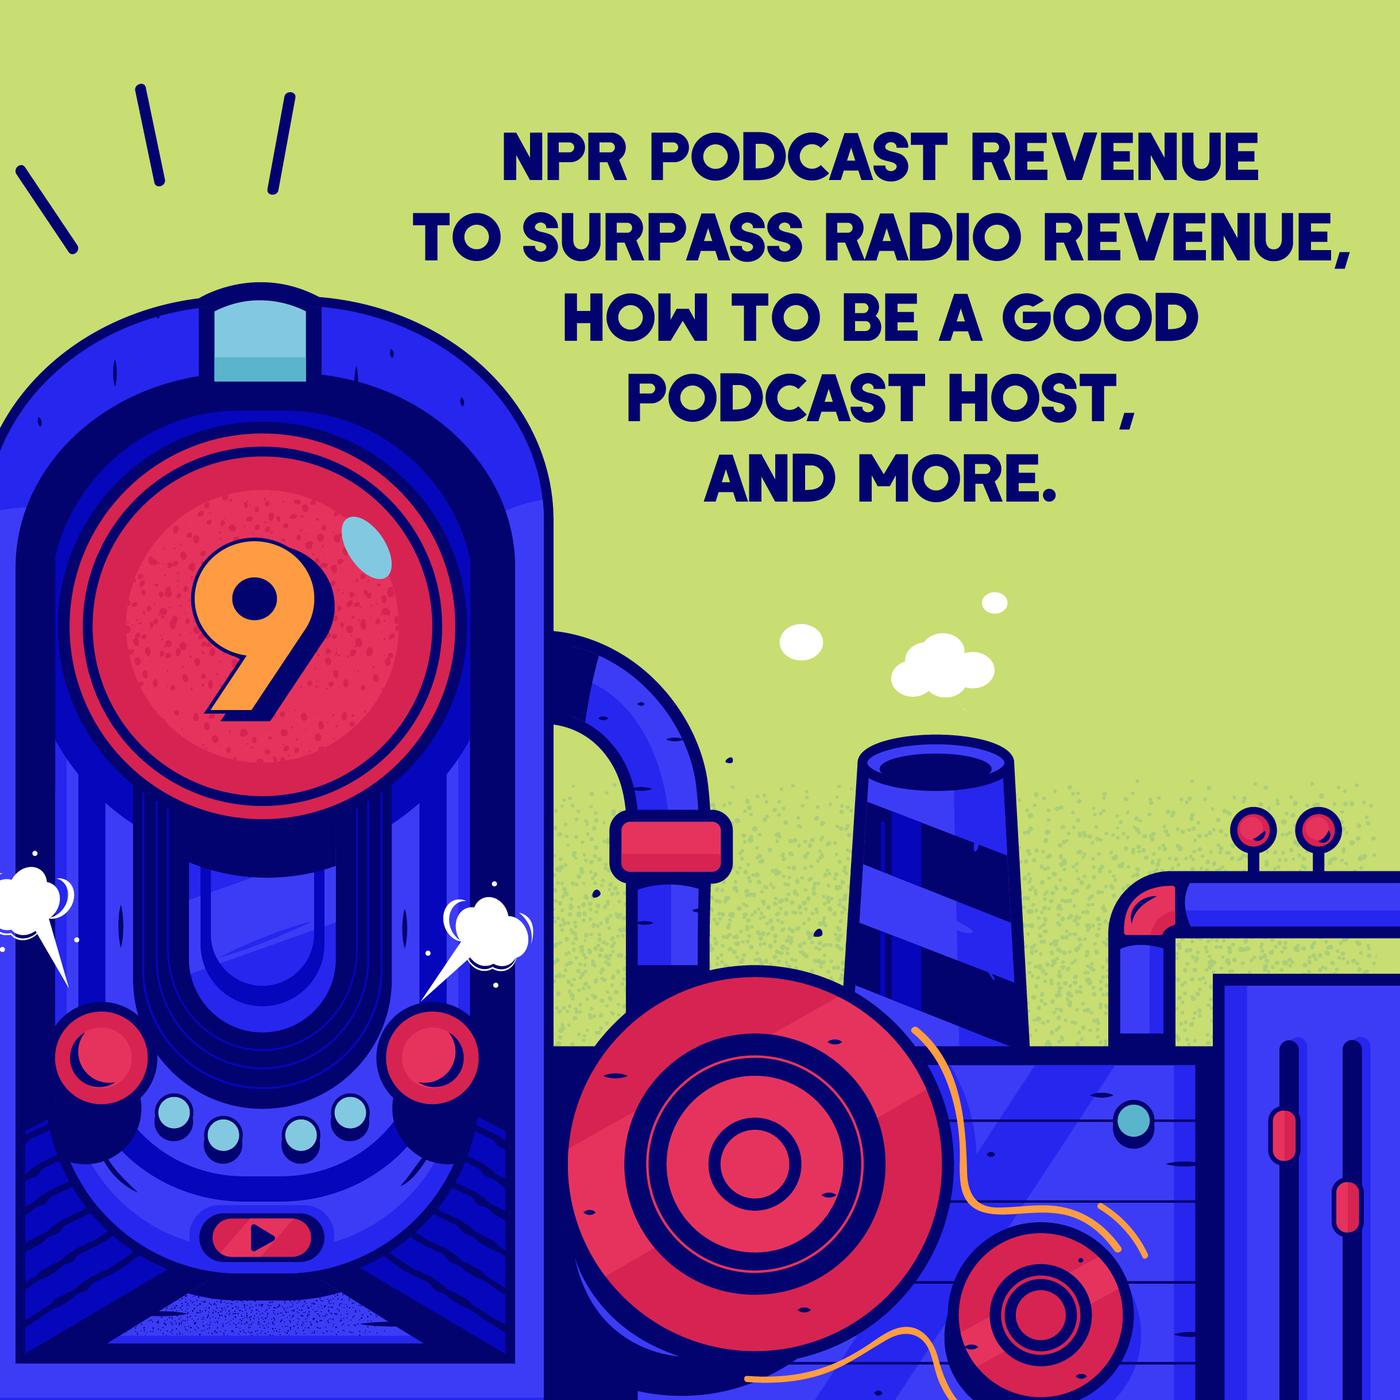 Episode 9 (TWIP) - NPR Podcast Revenue to Surpass Radio Revenue, How to be Good Podcast Host, and More.